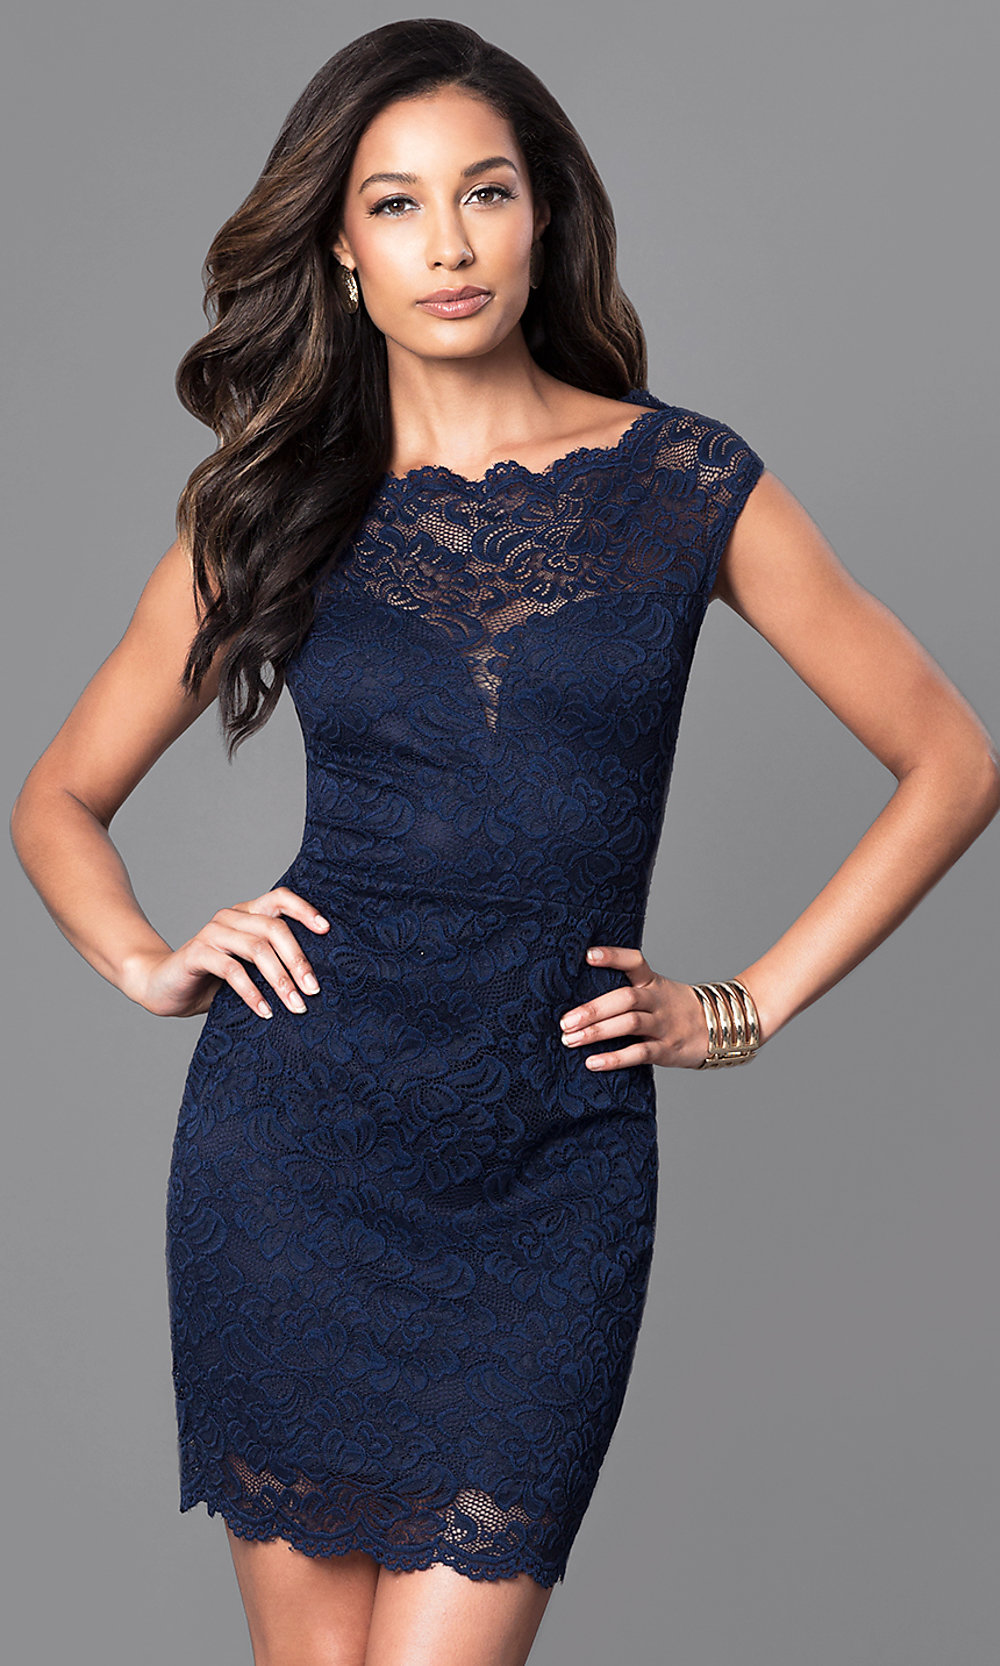 Cheap Navy Blue Lace SemiFormal Dress  PromGirl